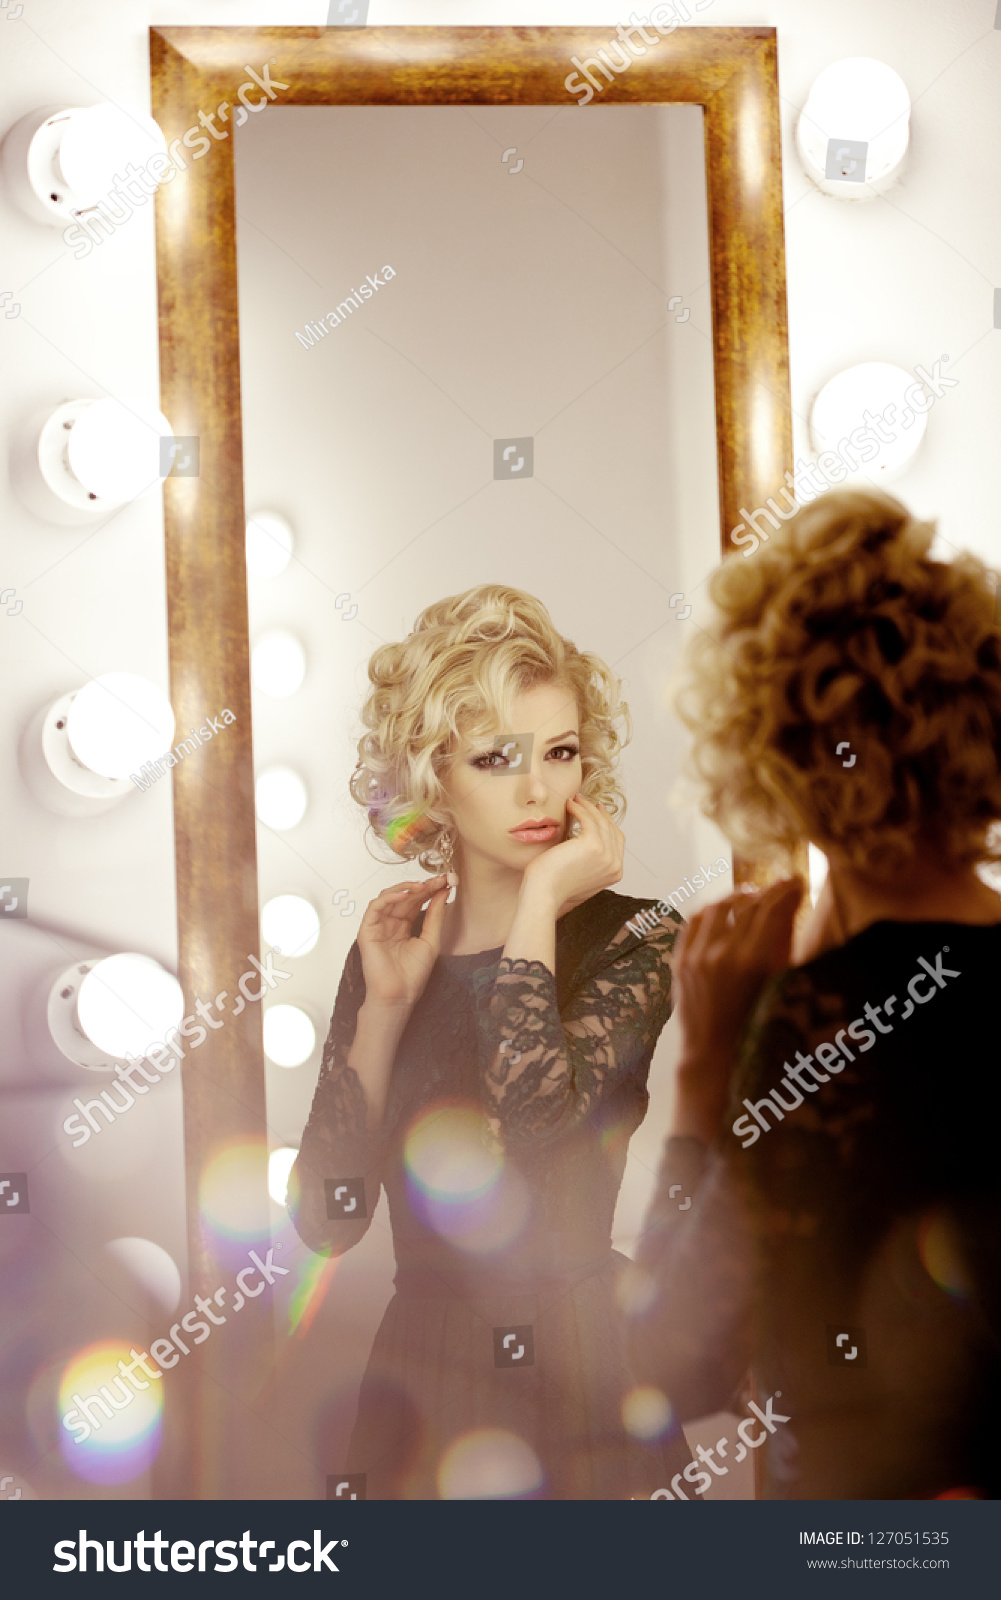 Beauty Luxury Woman Mirror Stock Photo 127051535 ...